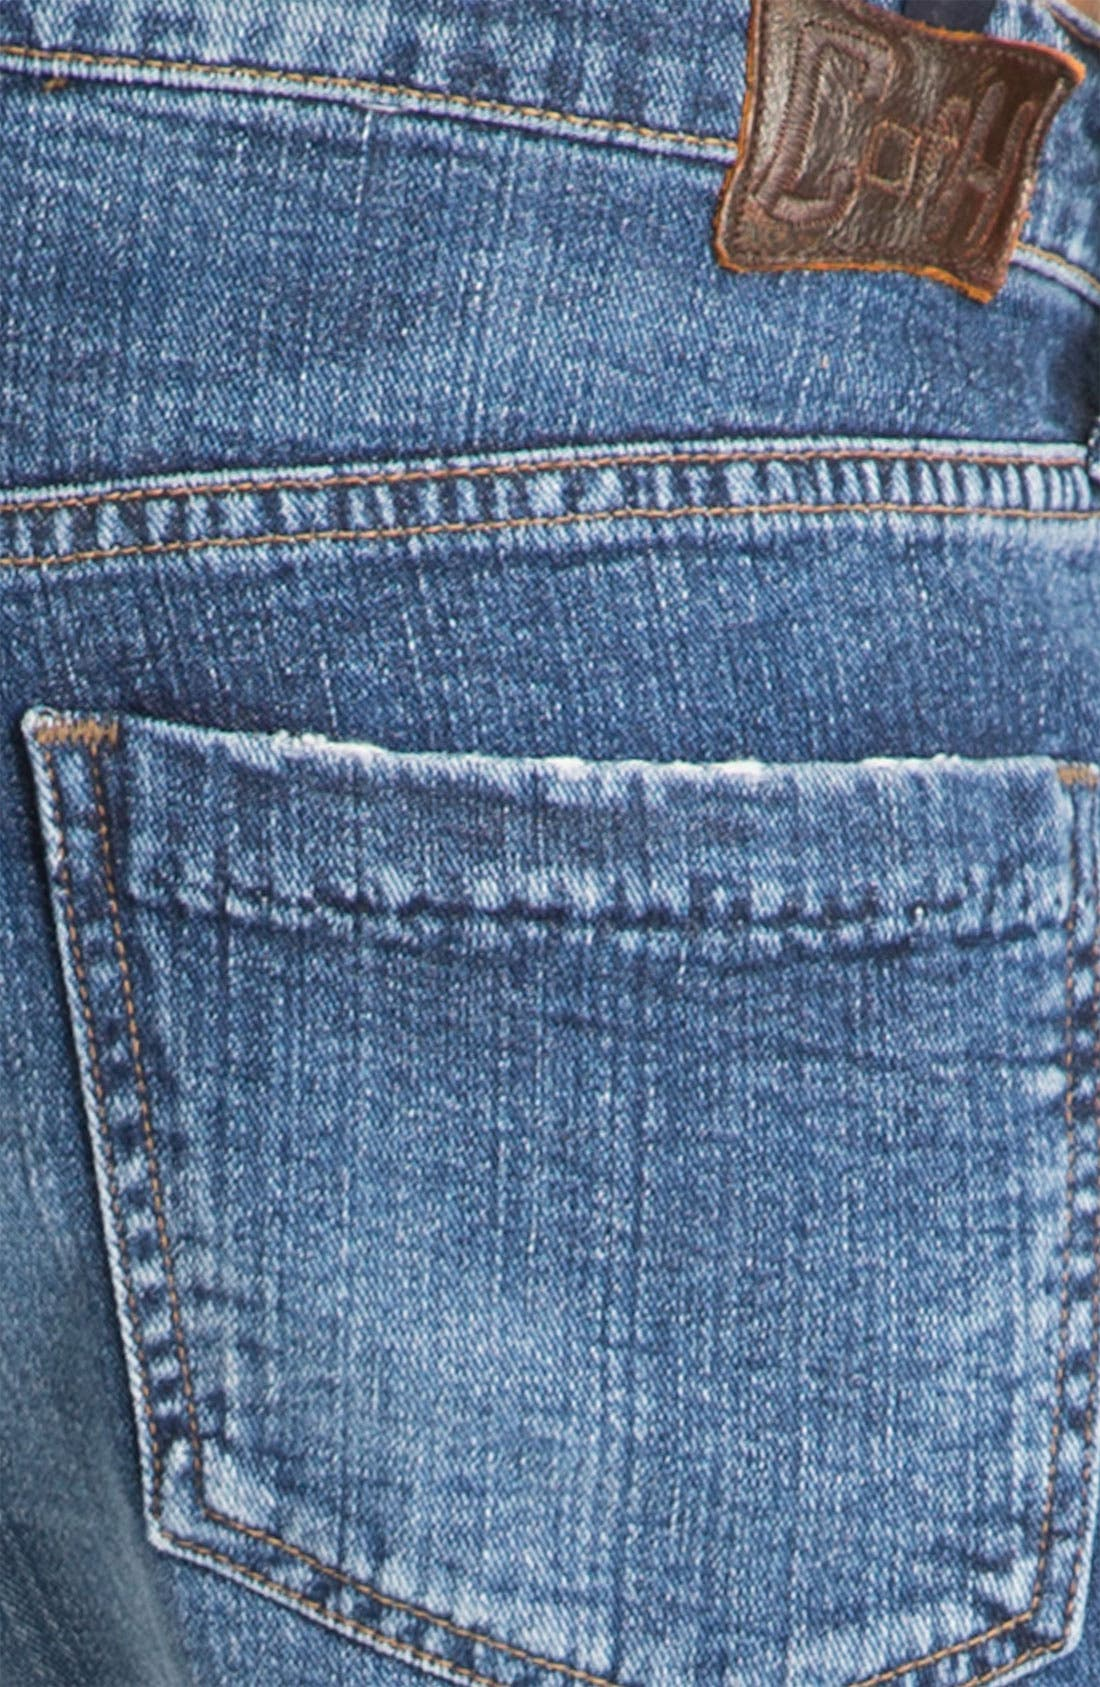 'Dylan' High Rise Loose Fit Jeans,                             Alternate thumbnail 4, color,                             479